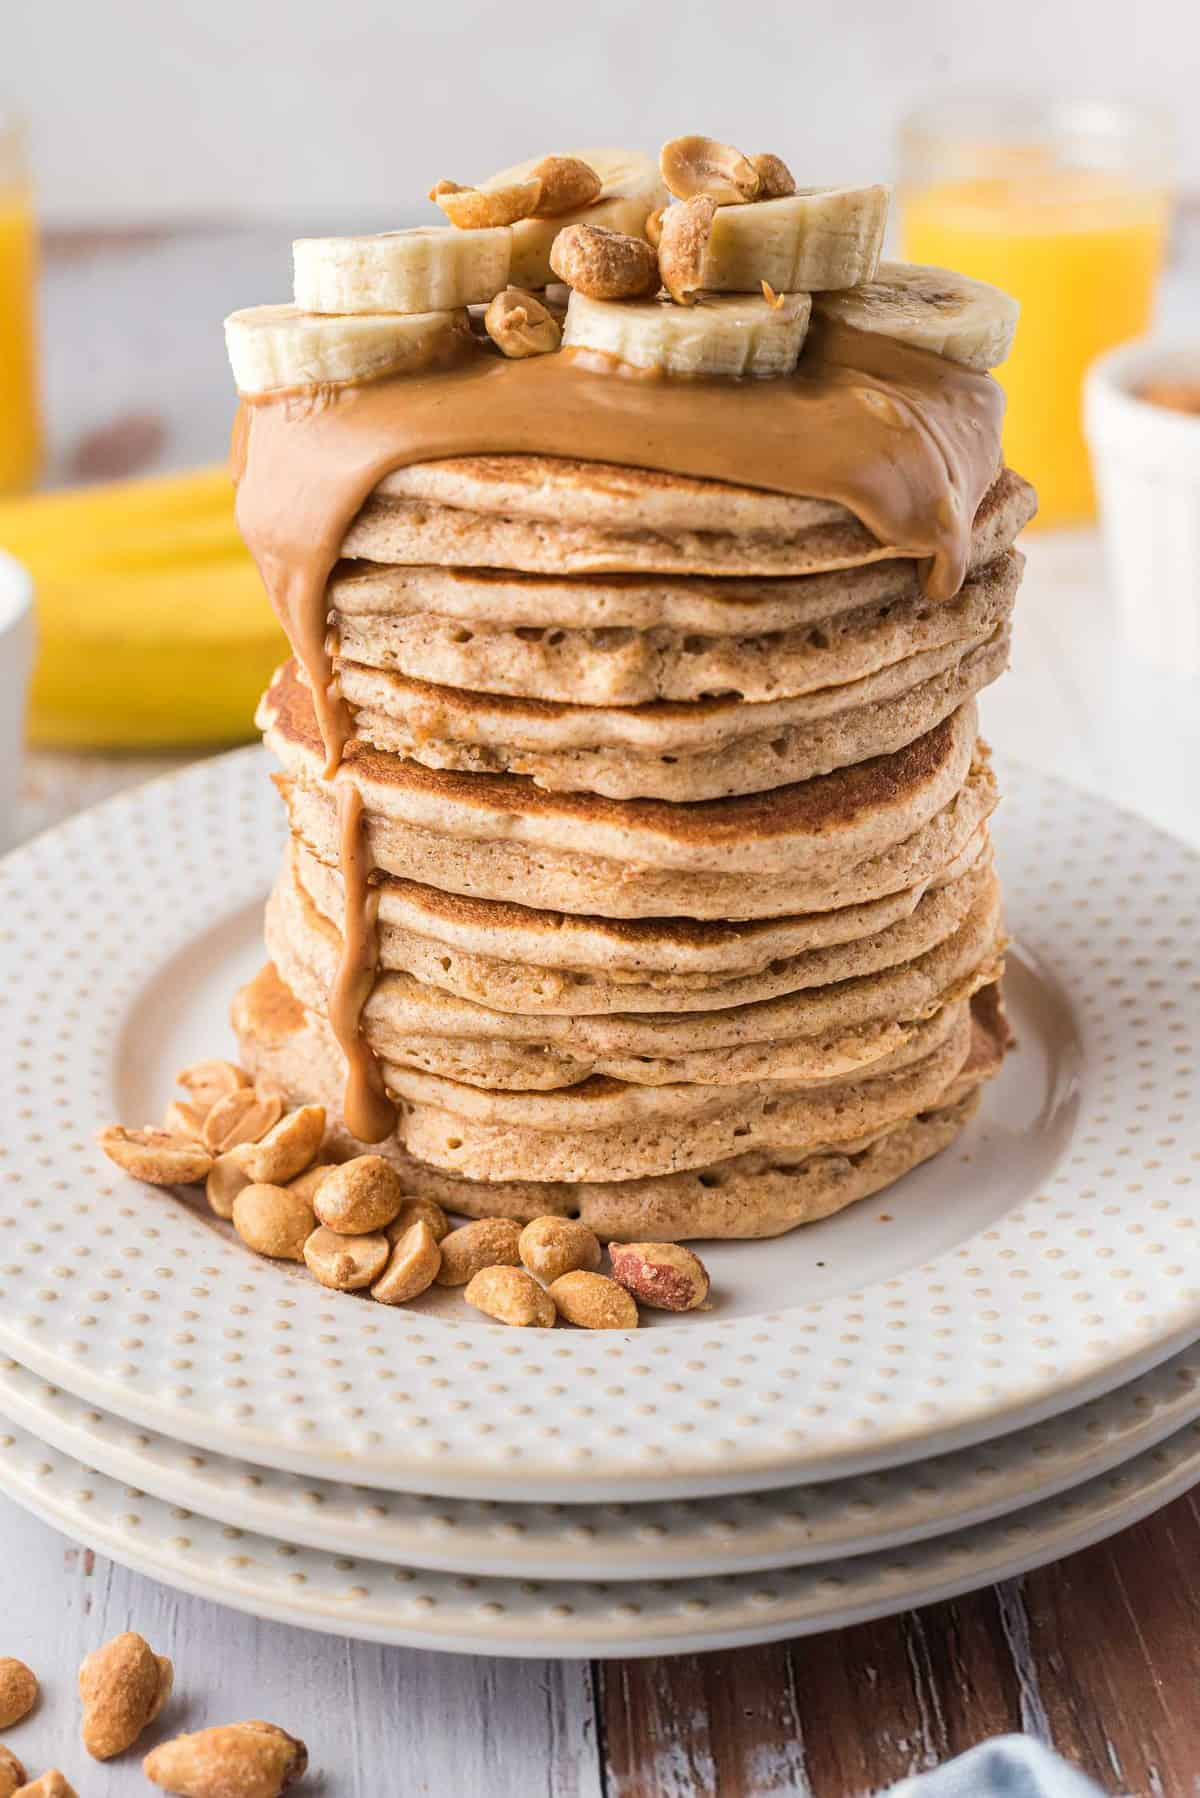 Very tall stack of pancakes topped with melted peanut butter, banana slices, and peanuts.